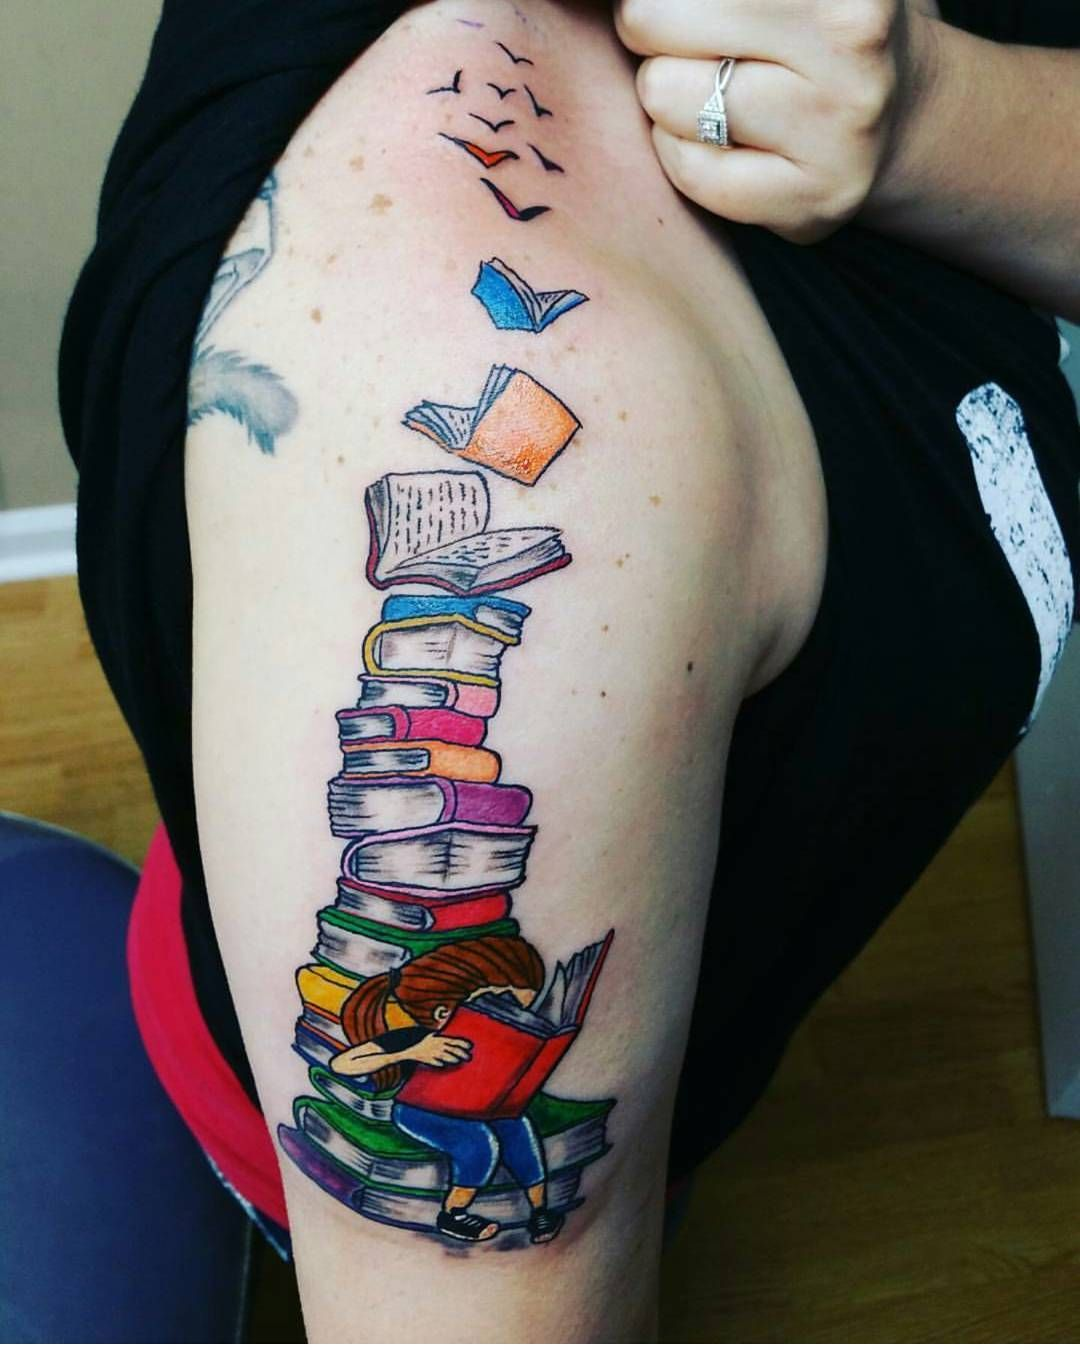 18 Tattoos Every Book Lover Will Fall In Love With Immediately Bookish Tattoos Book Tattoo Book Lover Tattoo